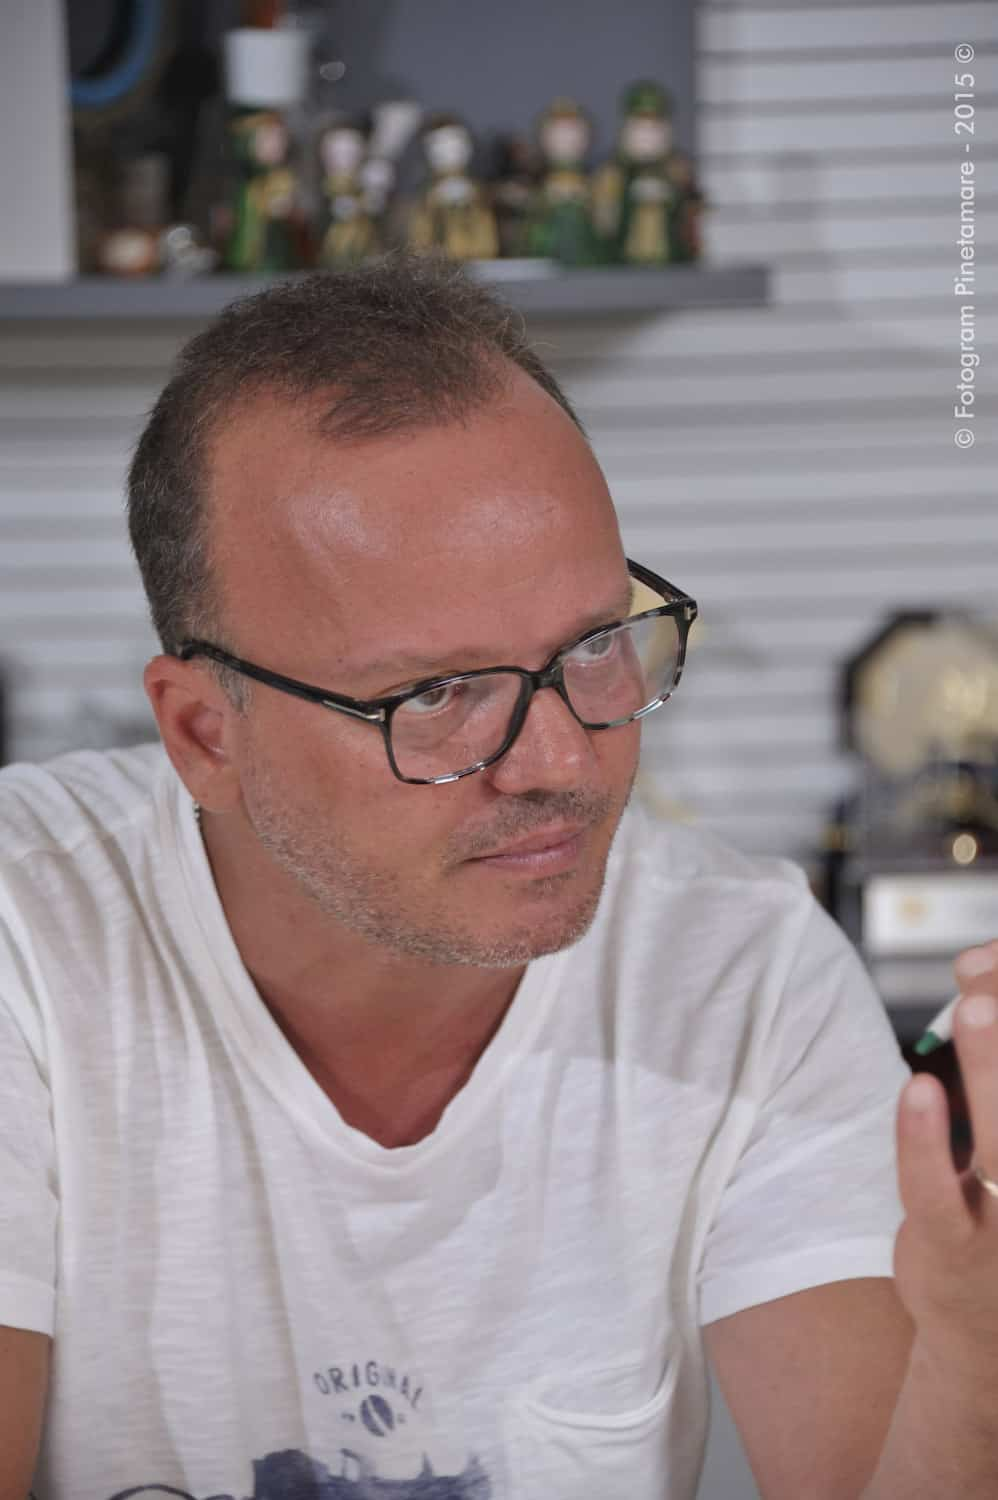 Gigi D'Alessio - Photo credit Antonio Ocone